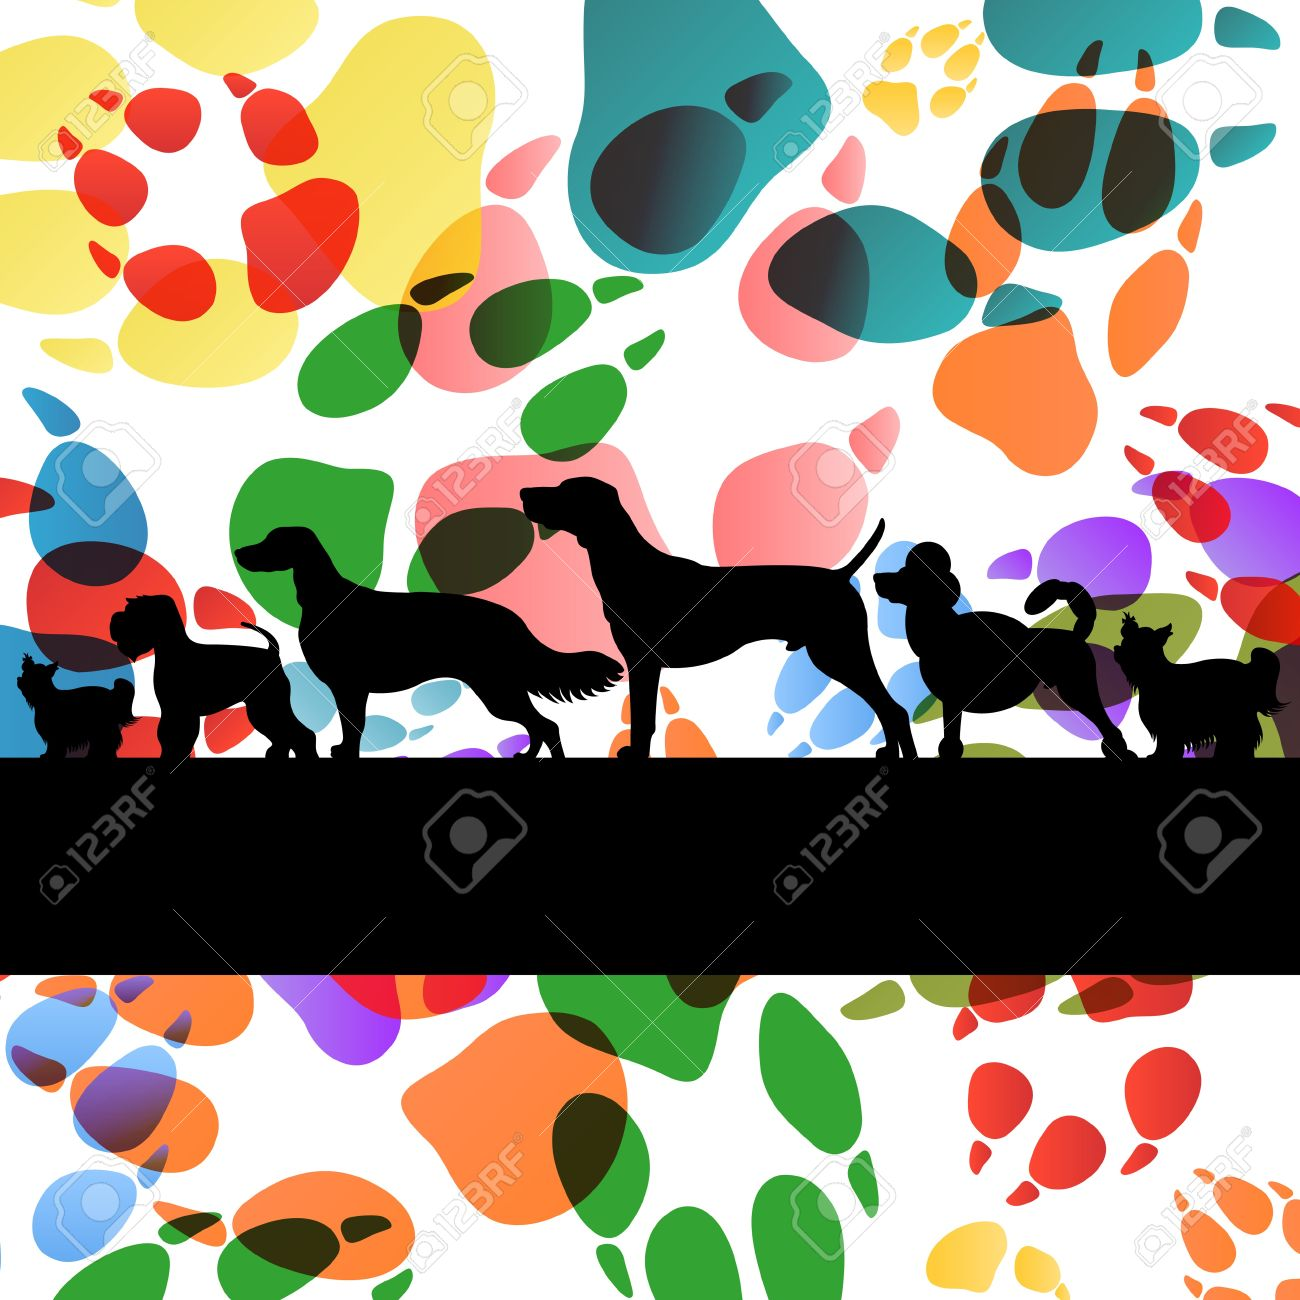 Dogs and dog footprints silhouettes colorful illustration collection background vector Stock Vector - 17871224